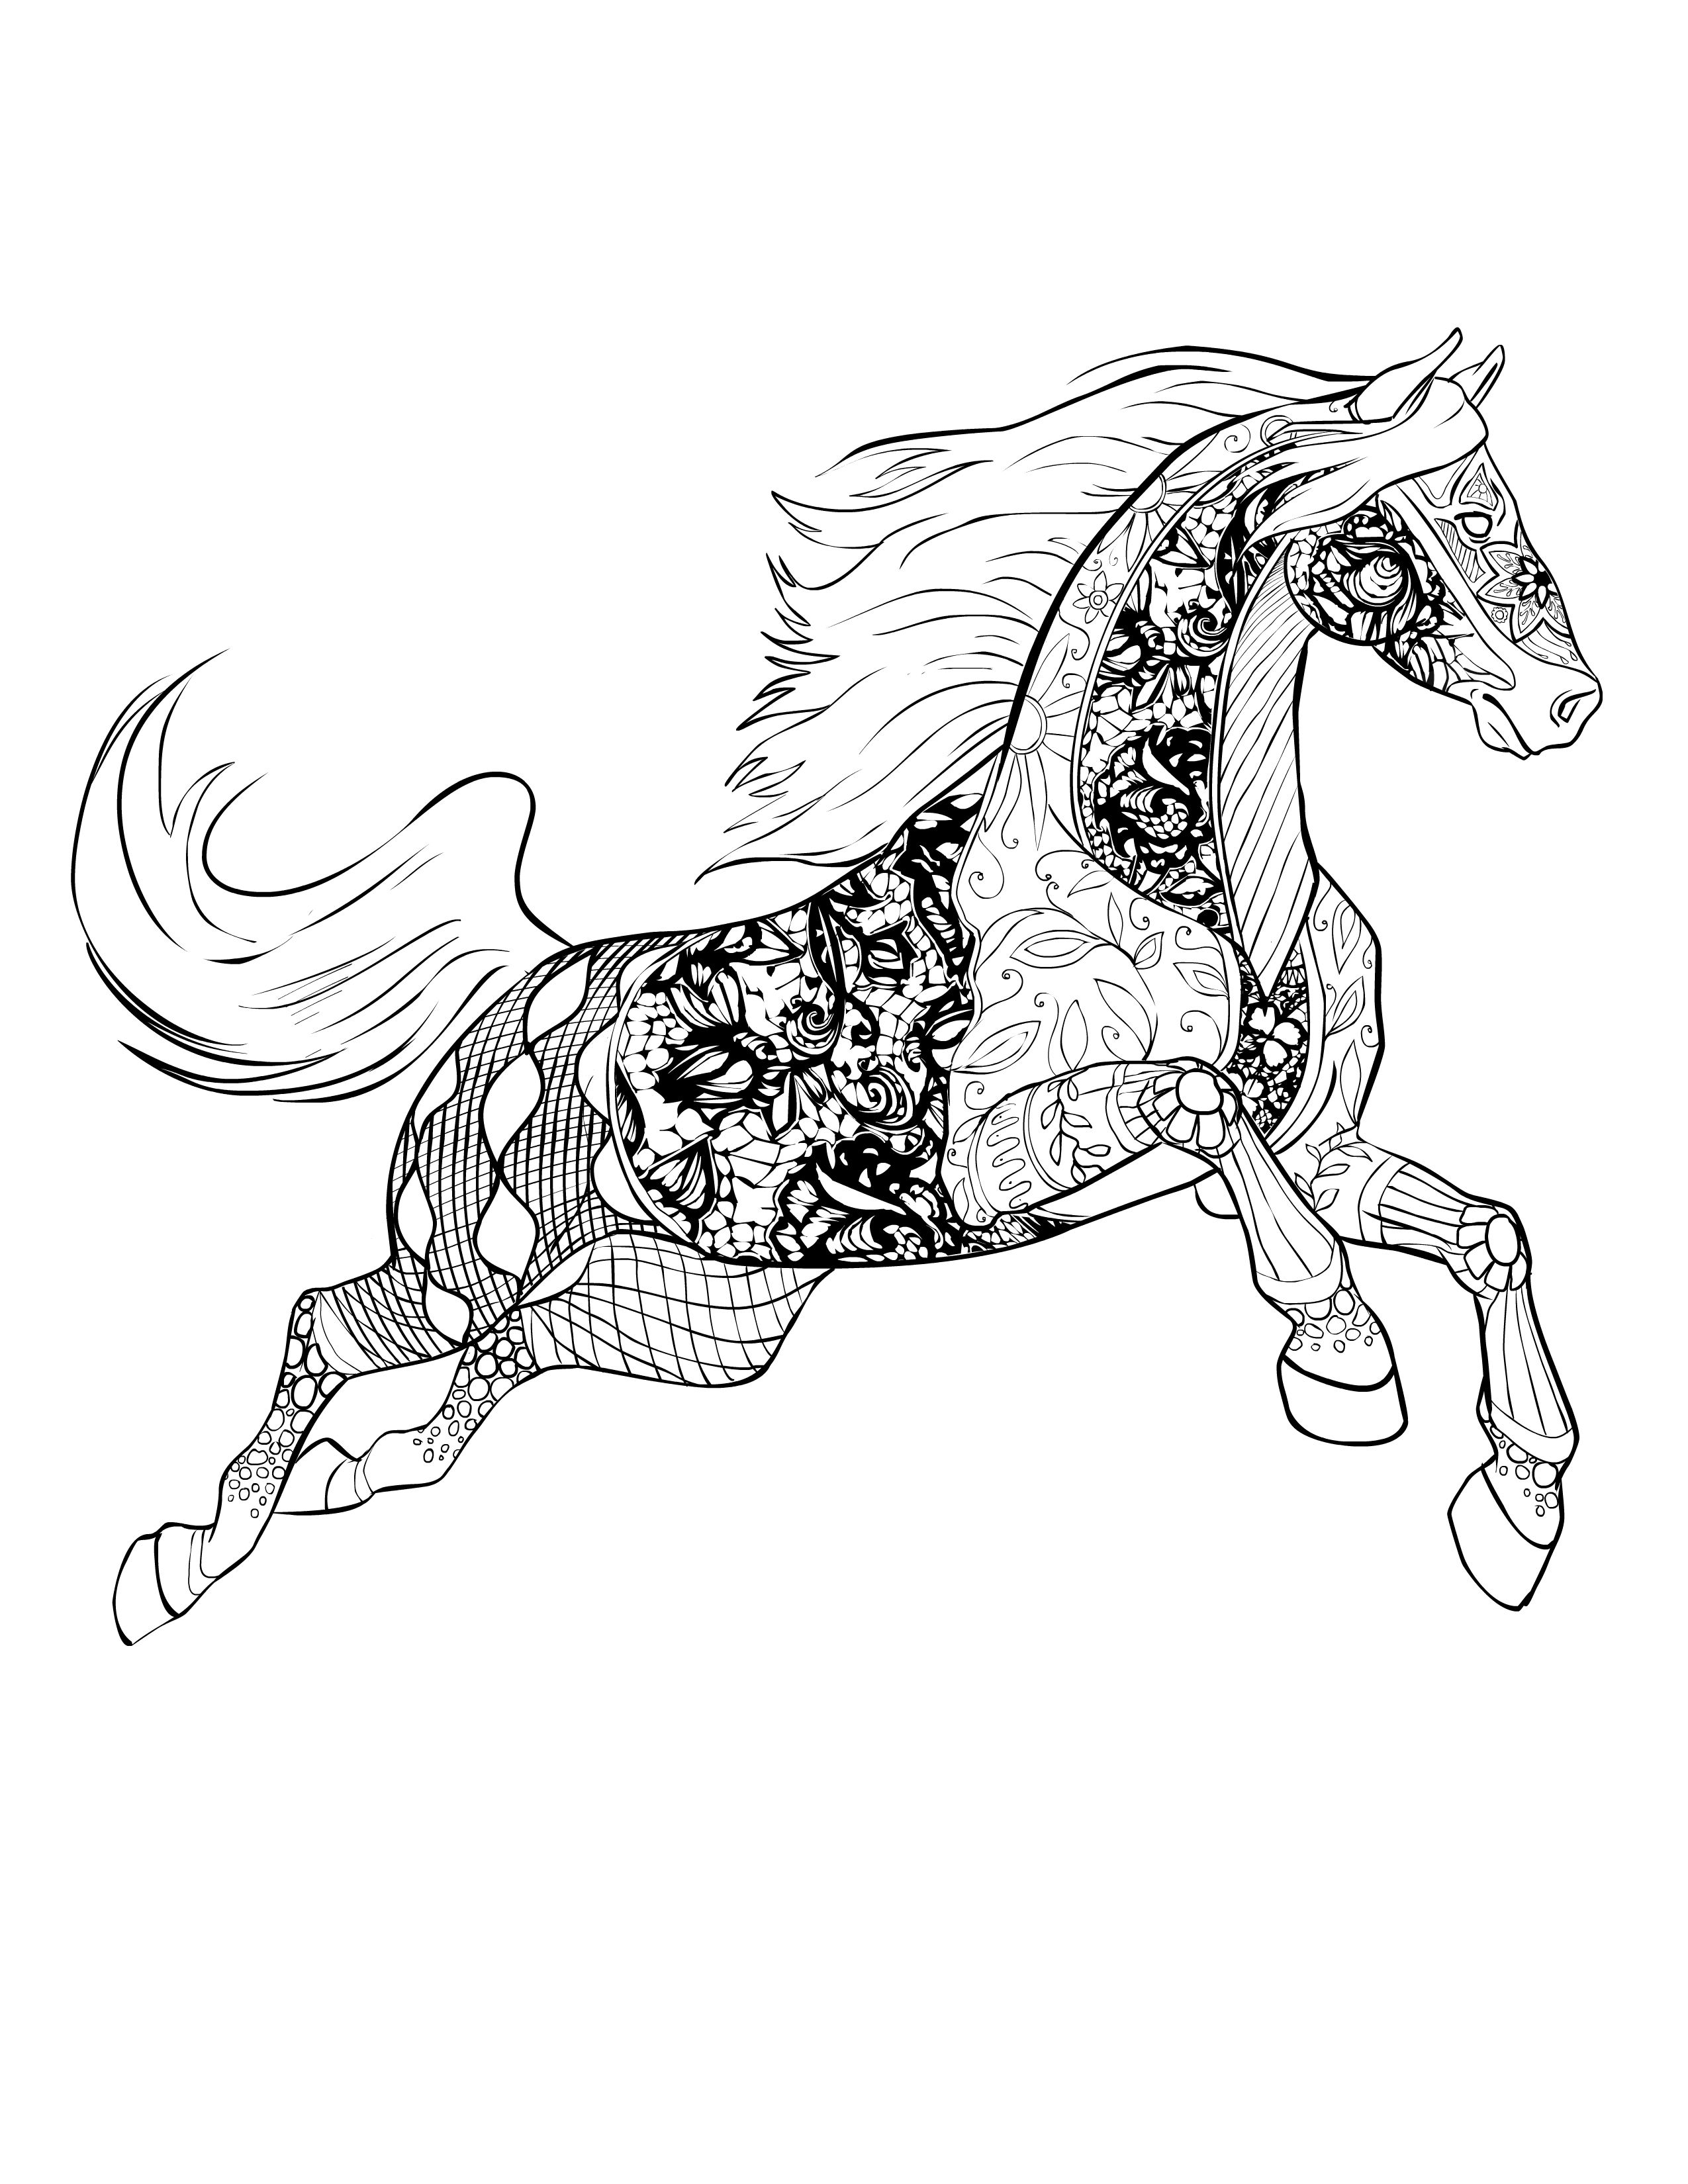 horse zentangle coloring pages dream horse a zentangled fantasy animal drawings horse coloring horse zentangle pages